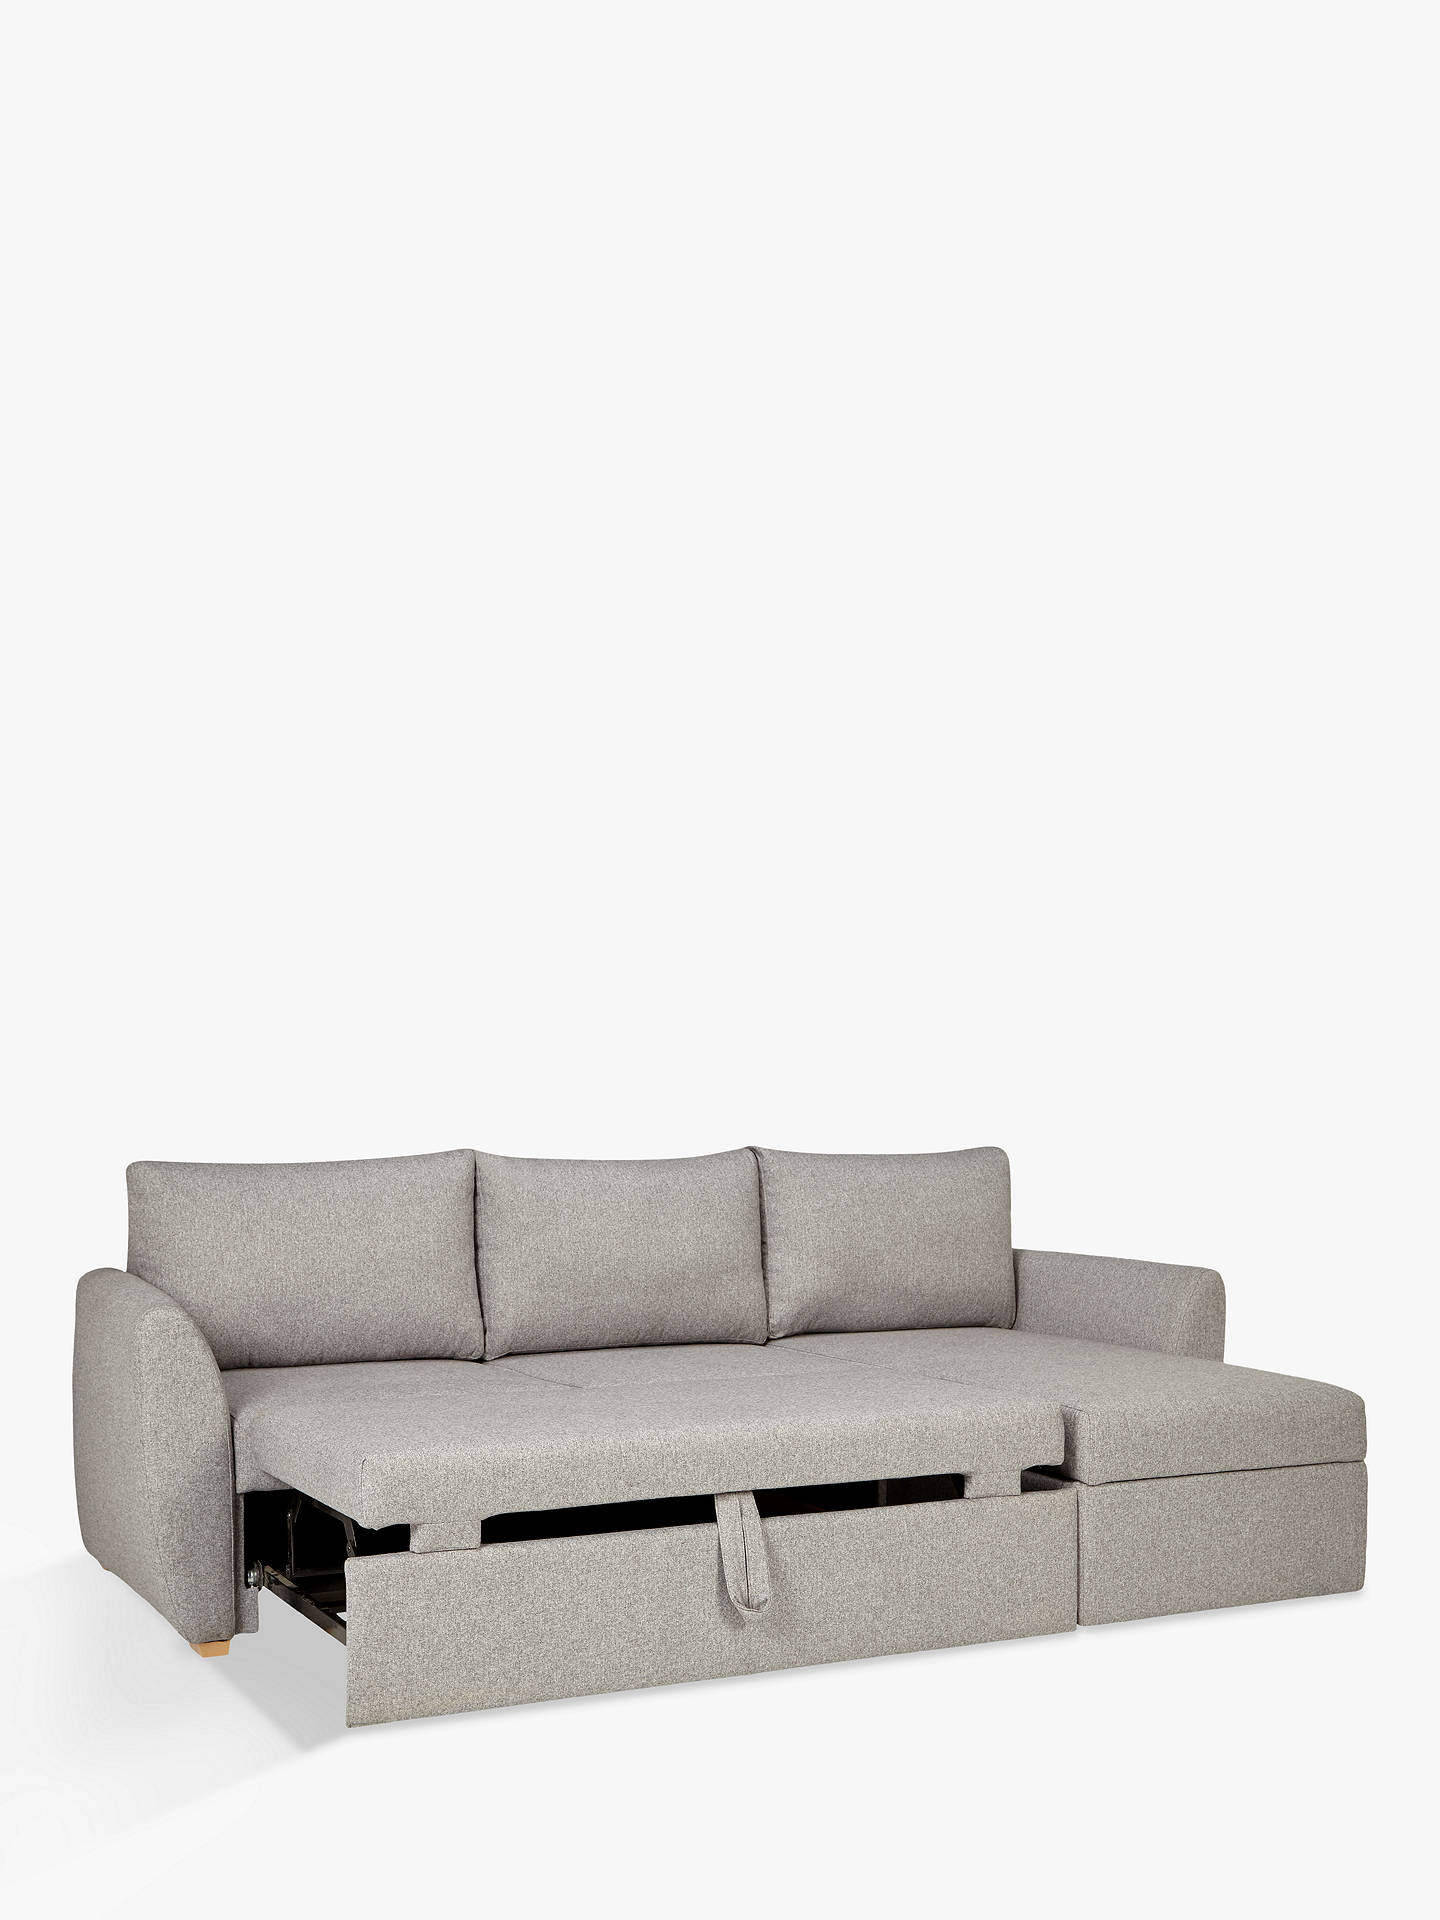 Amazing John Lewis Partners Sansa Splayed Arm Sofa Bed Saga Grey Alphanode Cool Chair Designs And Ideas Alphanodeonline